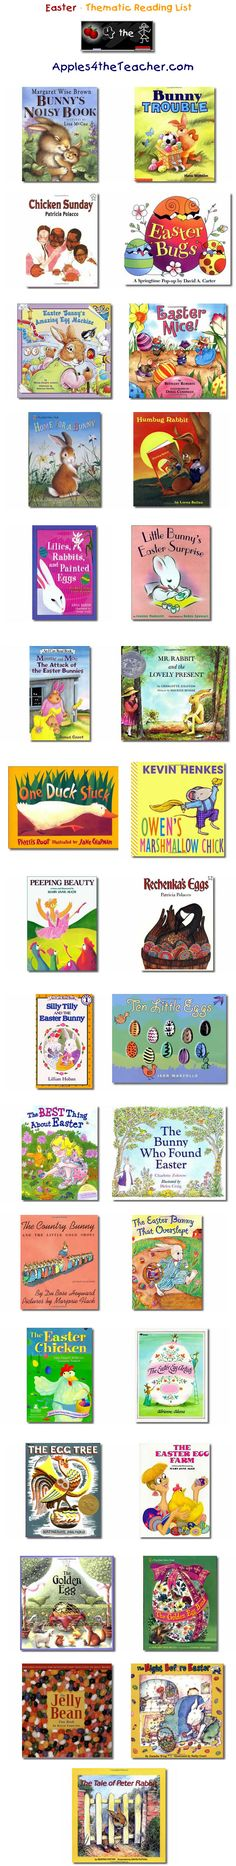 Suggested thematic reading list for Easter - Easter books for kids. Stories and picture books.